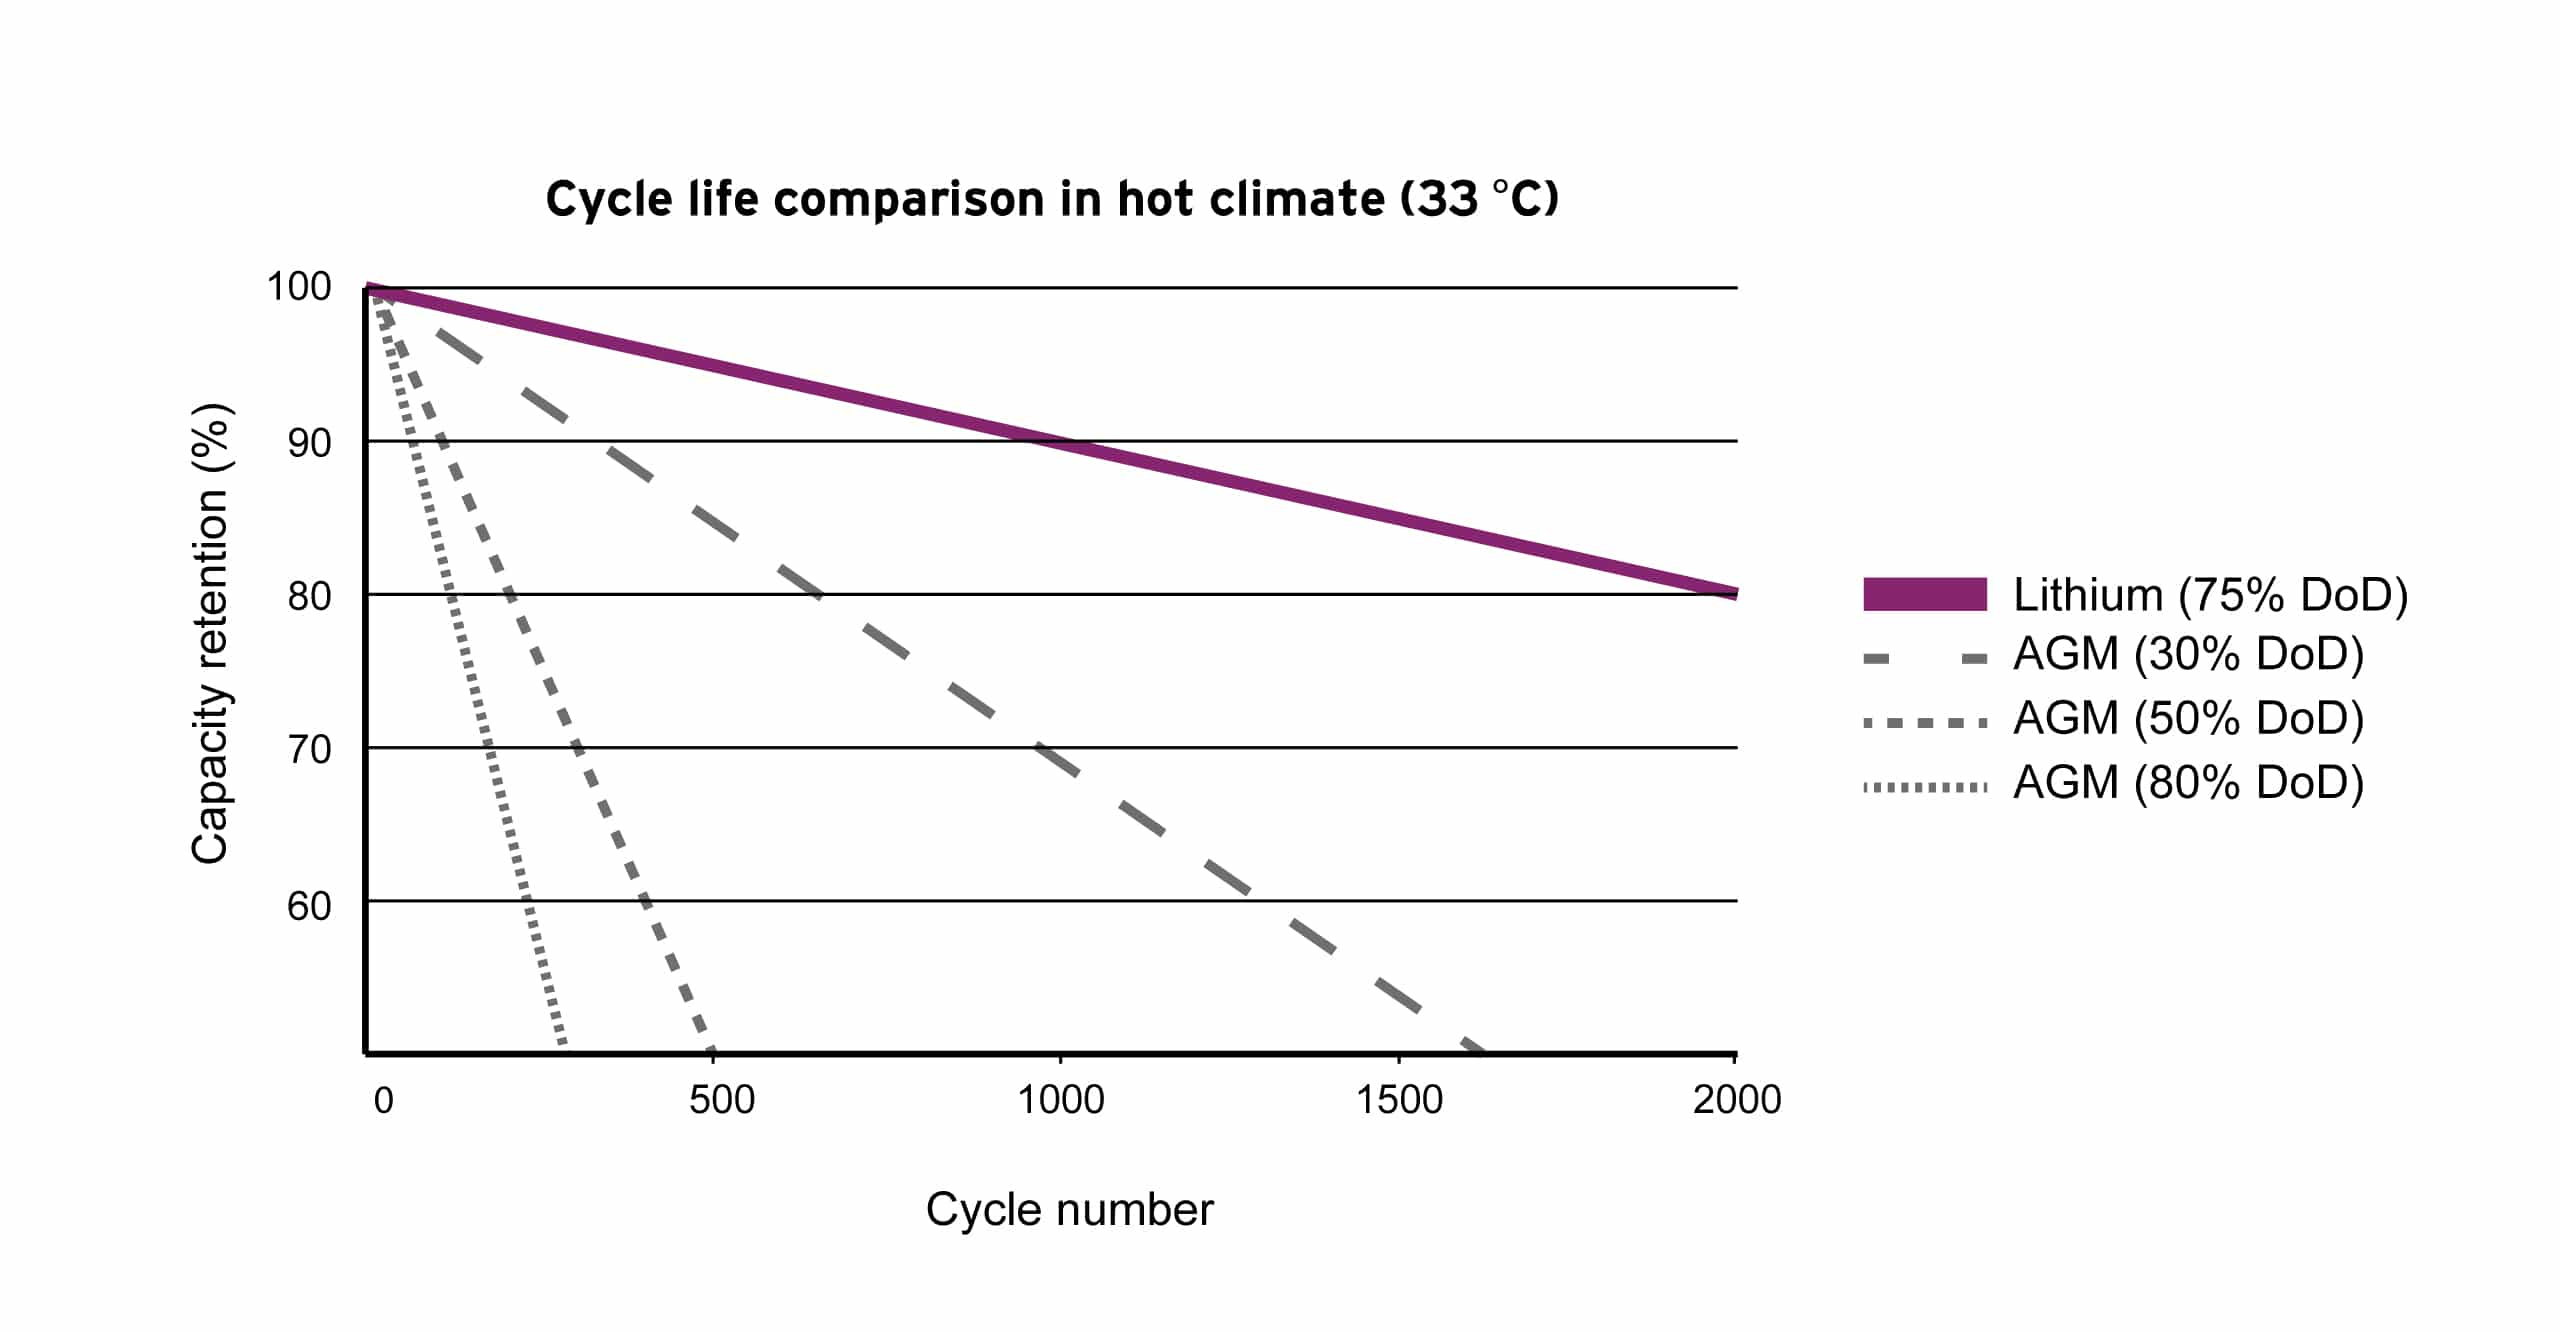 Lithium and lead batteries cycles at 33 degrees Celsius